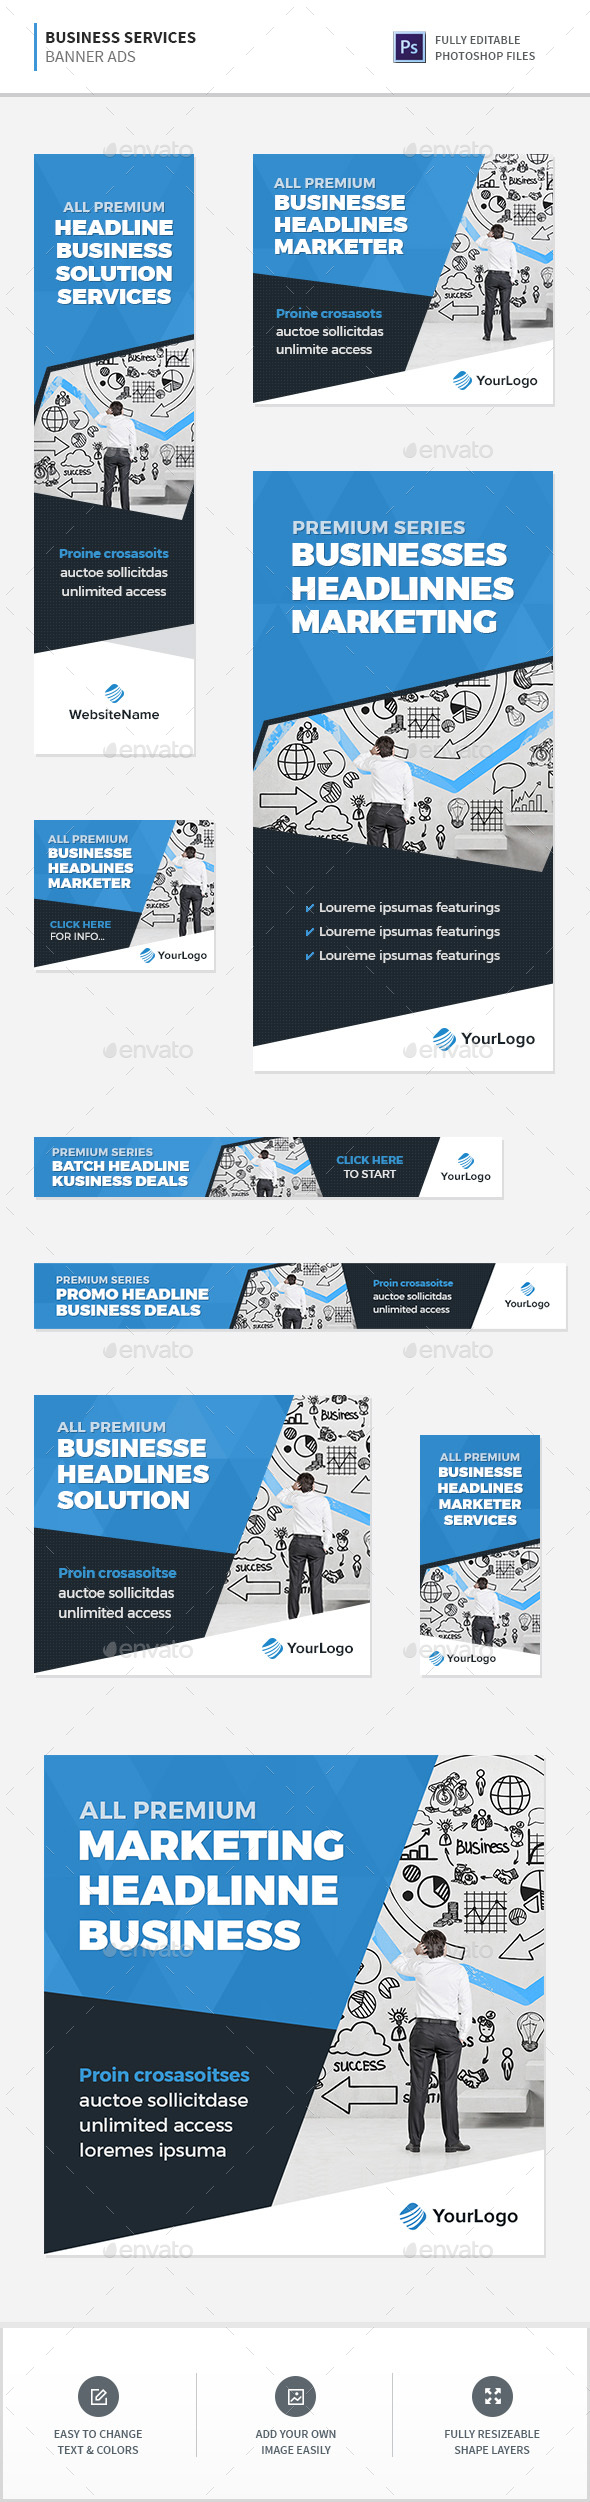 Business Services Banners - Banners & Ads Web Elements